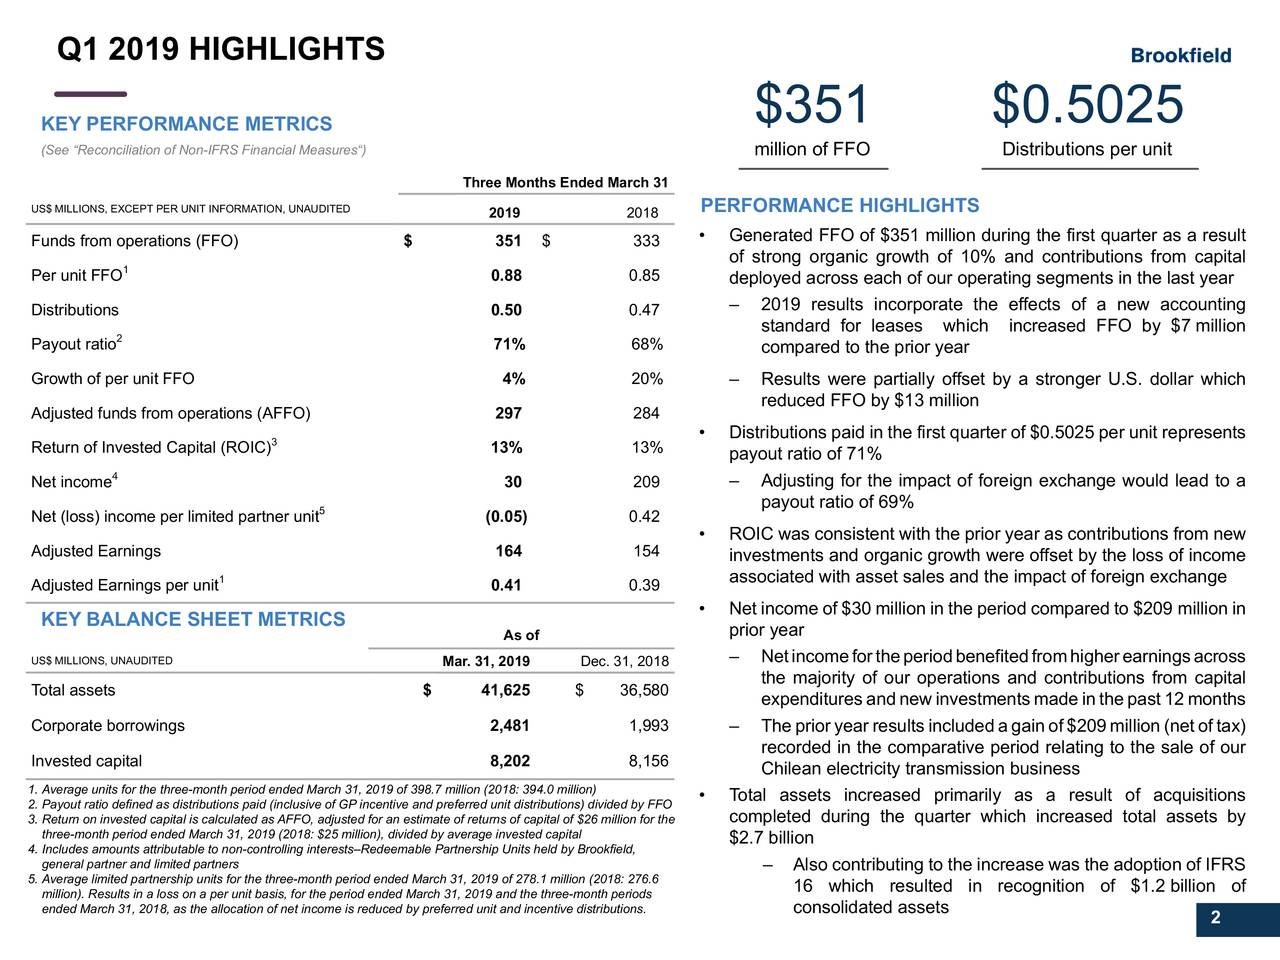 Brookfield Infrastructure Partners L.P. 2019 Q1